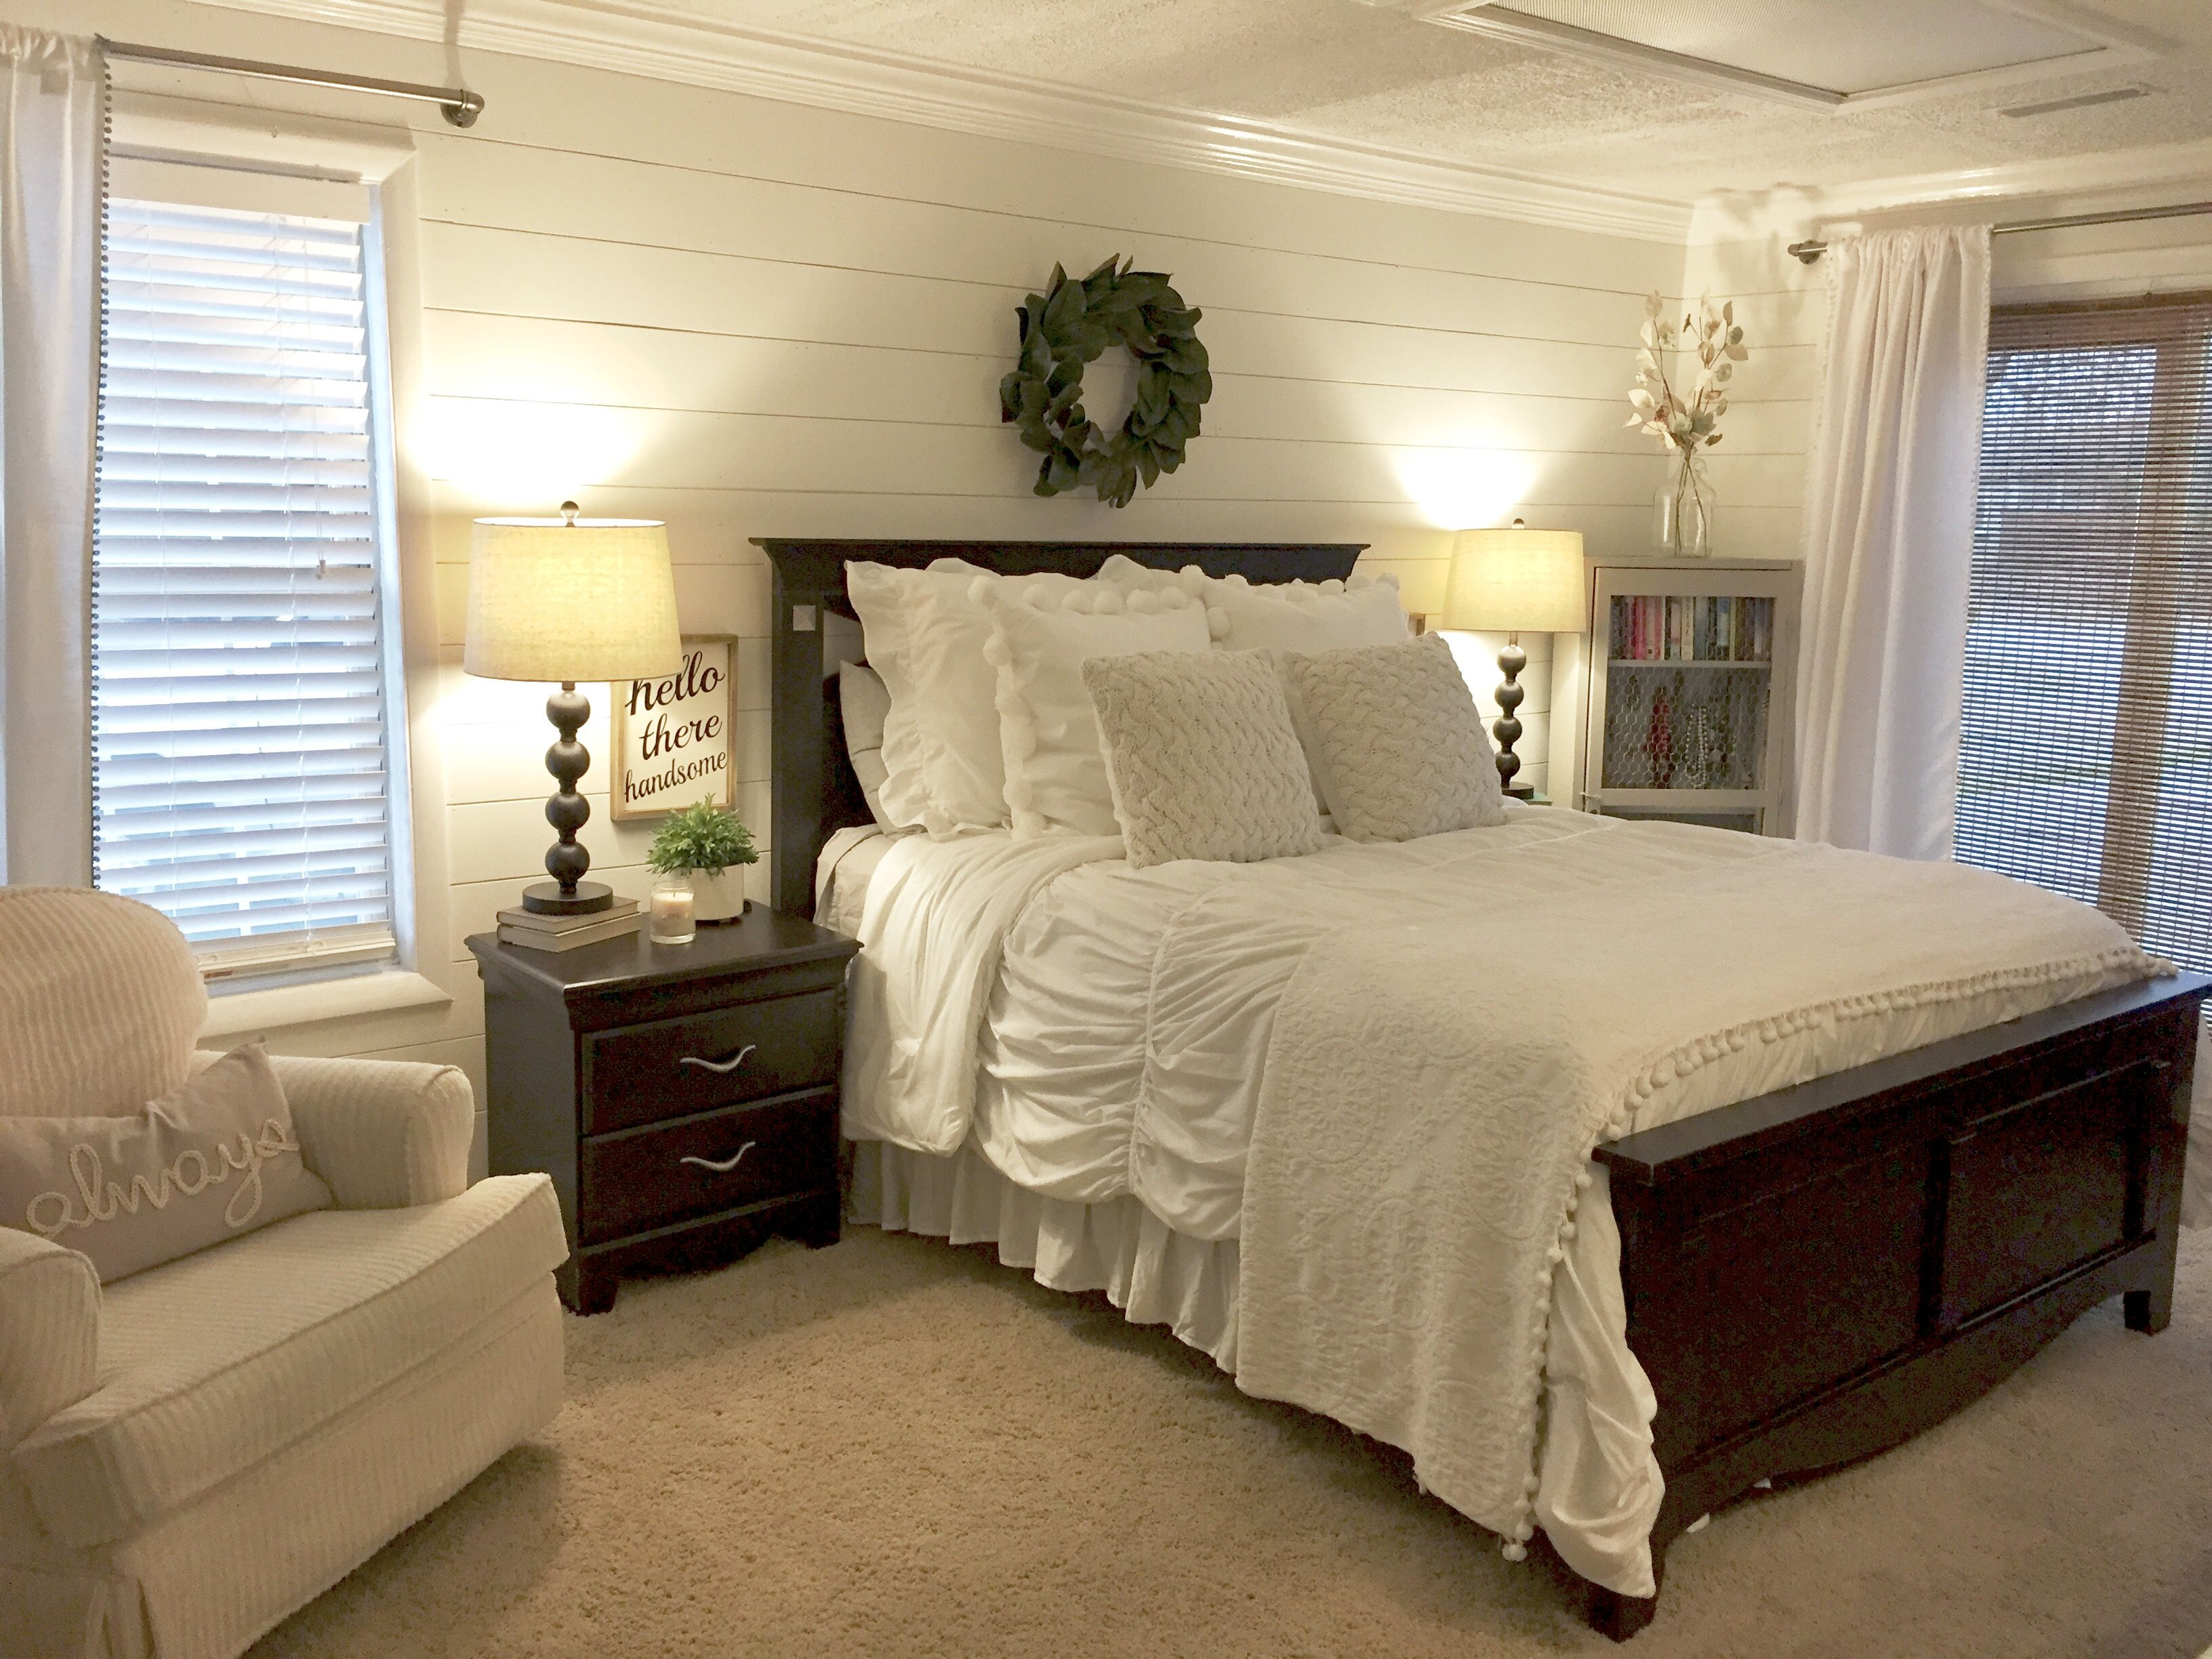 bedroom wall furniture. shiplap bedroom walls with farmhouse charm magnolia wreath and alabaster white paint wall furniture